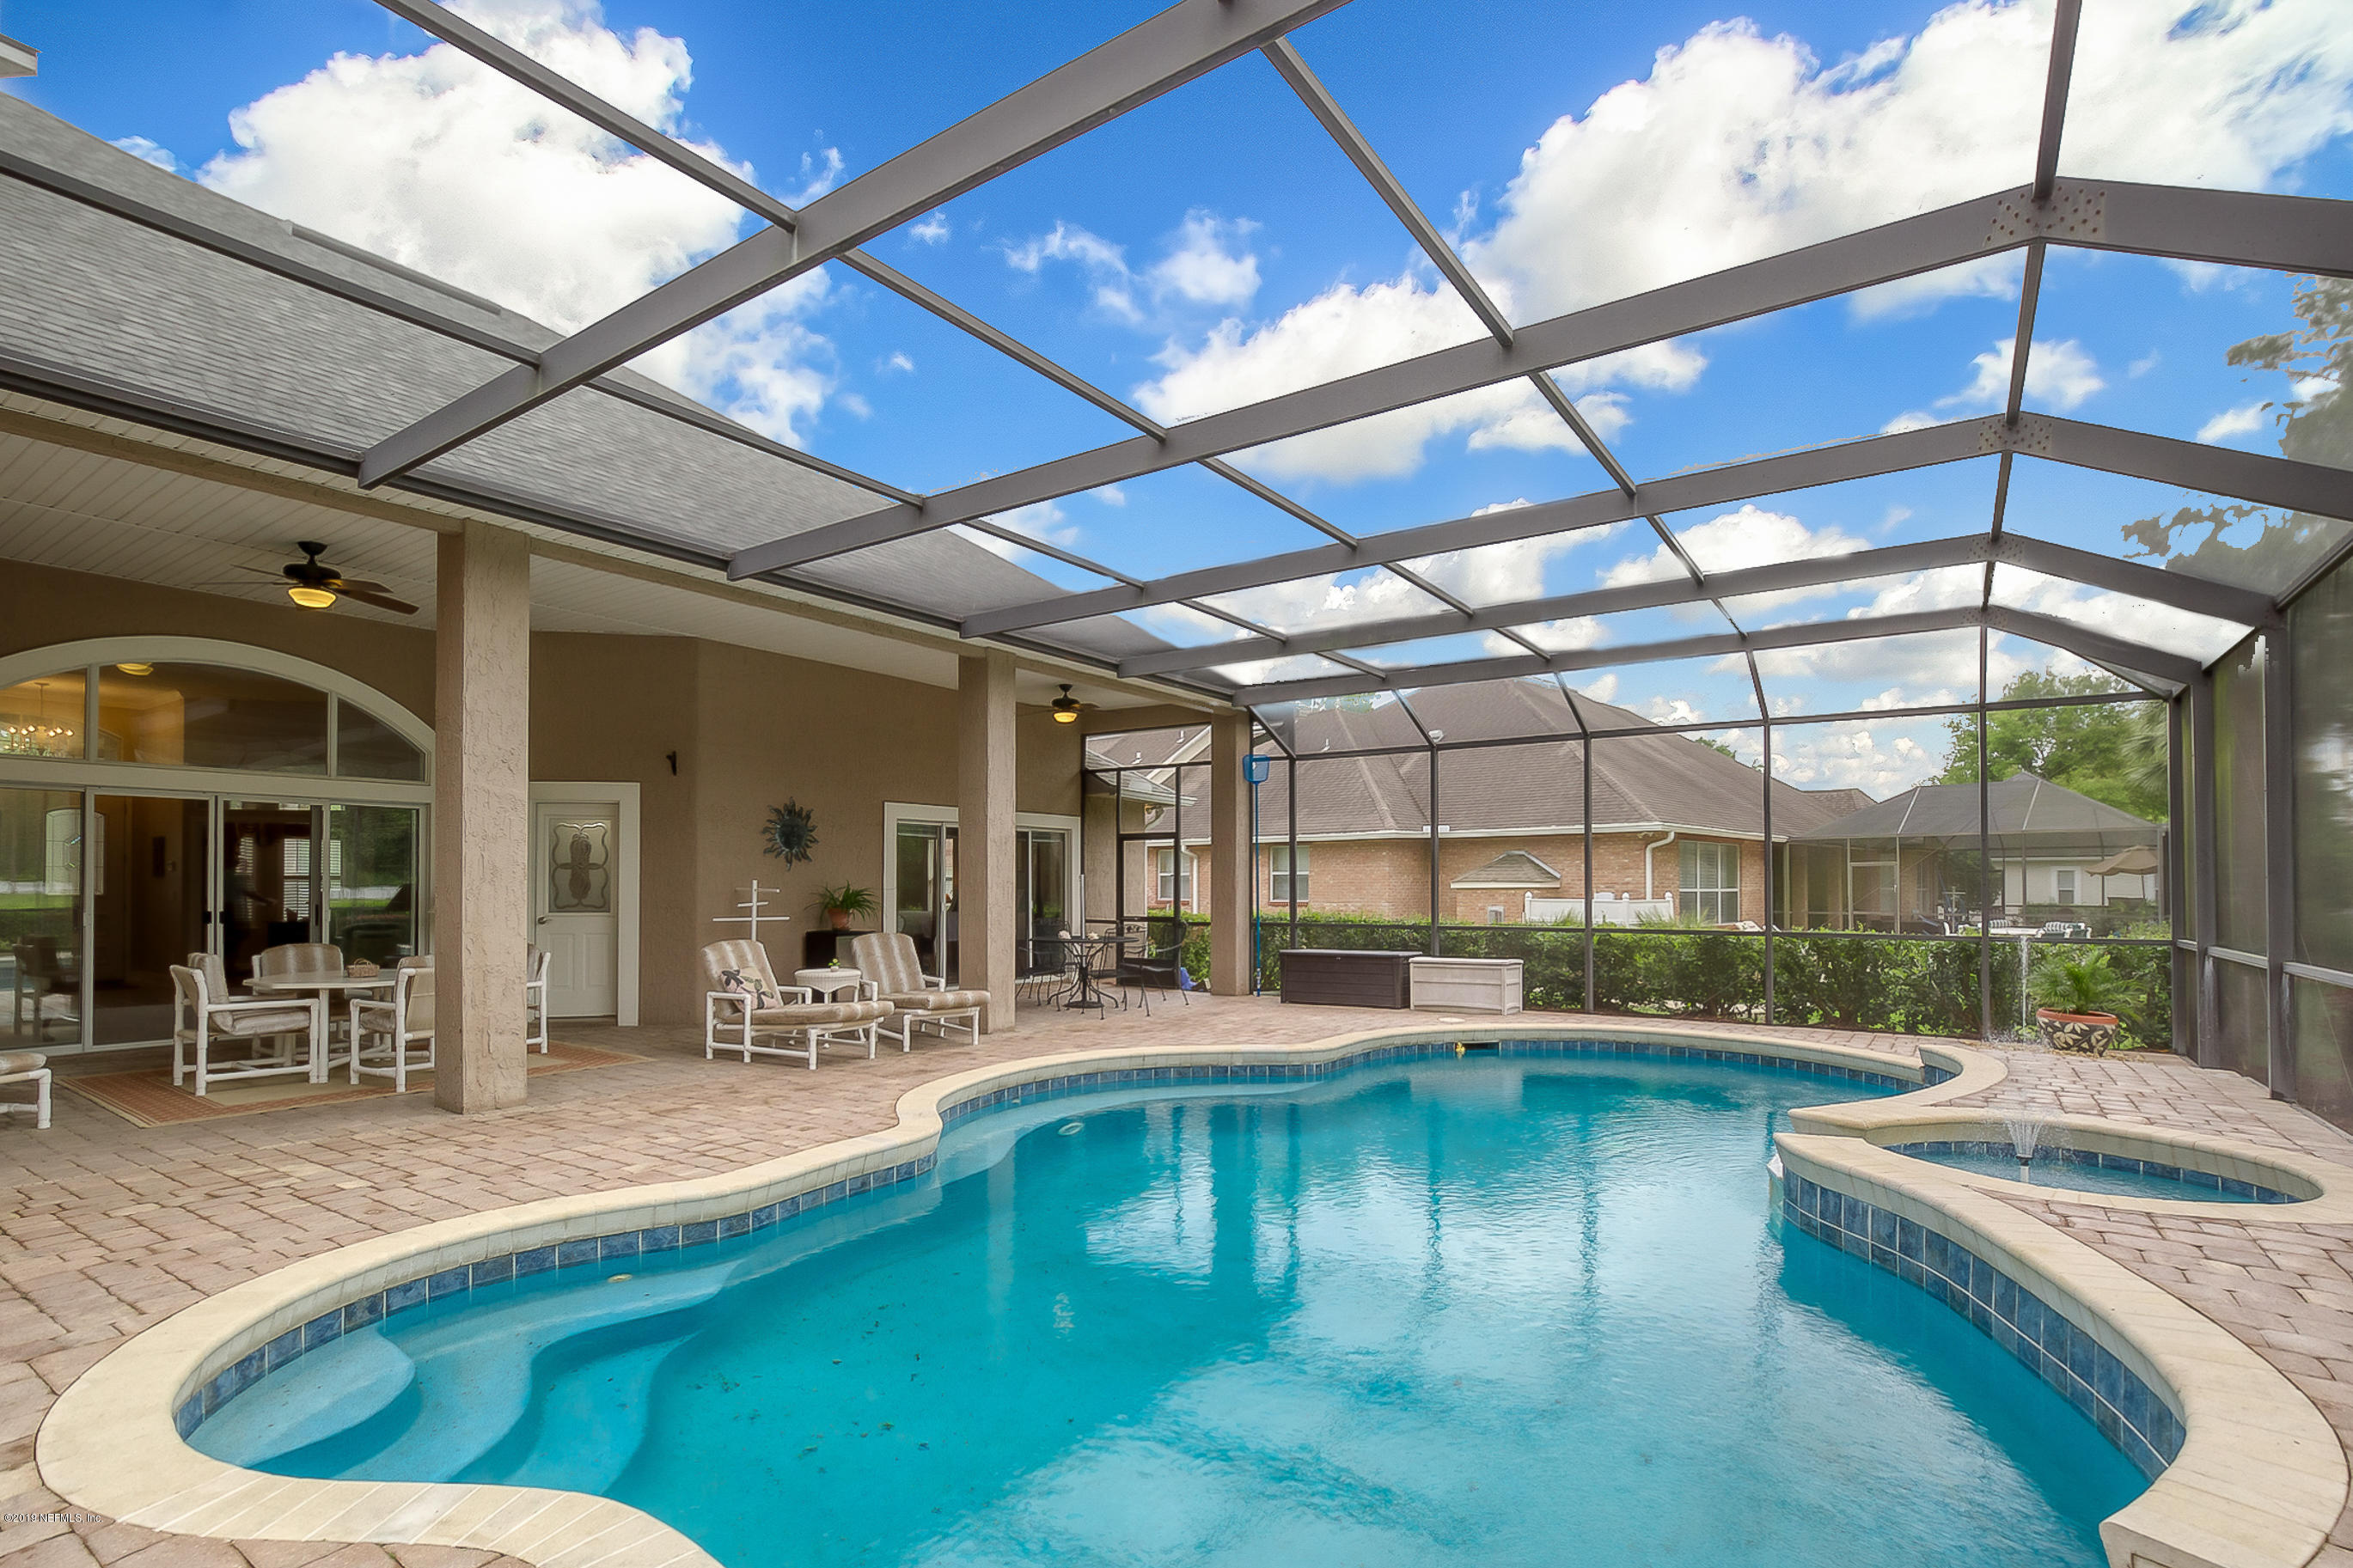 2805 APPLACHEE, ST JOHNS, FLORIDA 32259, 4 Bedrooms Bedrooms, ,3 BathroomsBathrooms,Residential - single family,For sale,APPLACHEE,987496